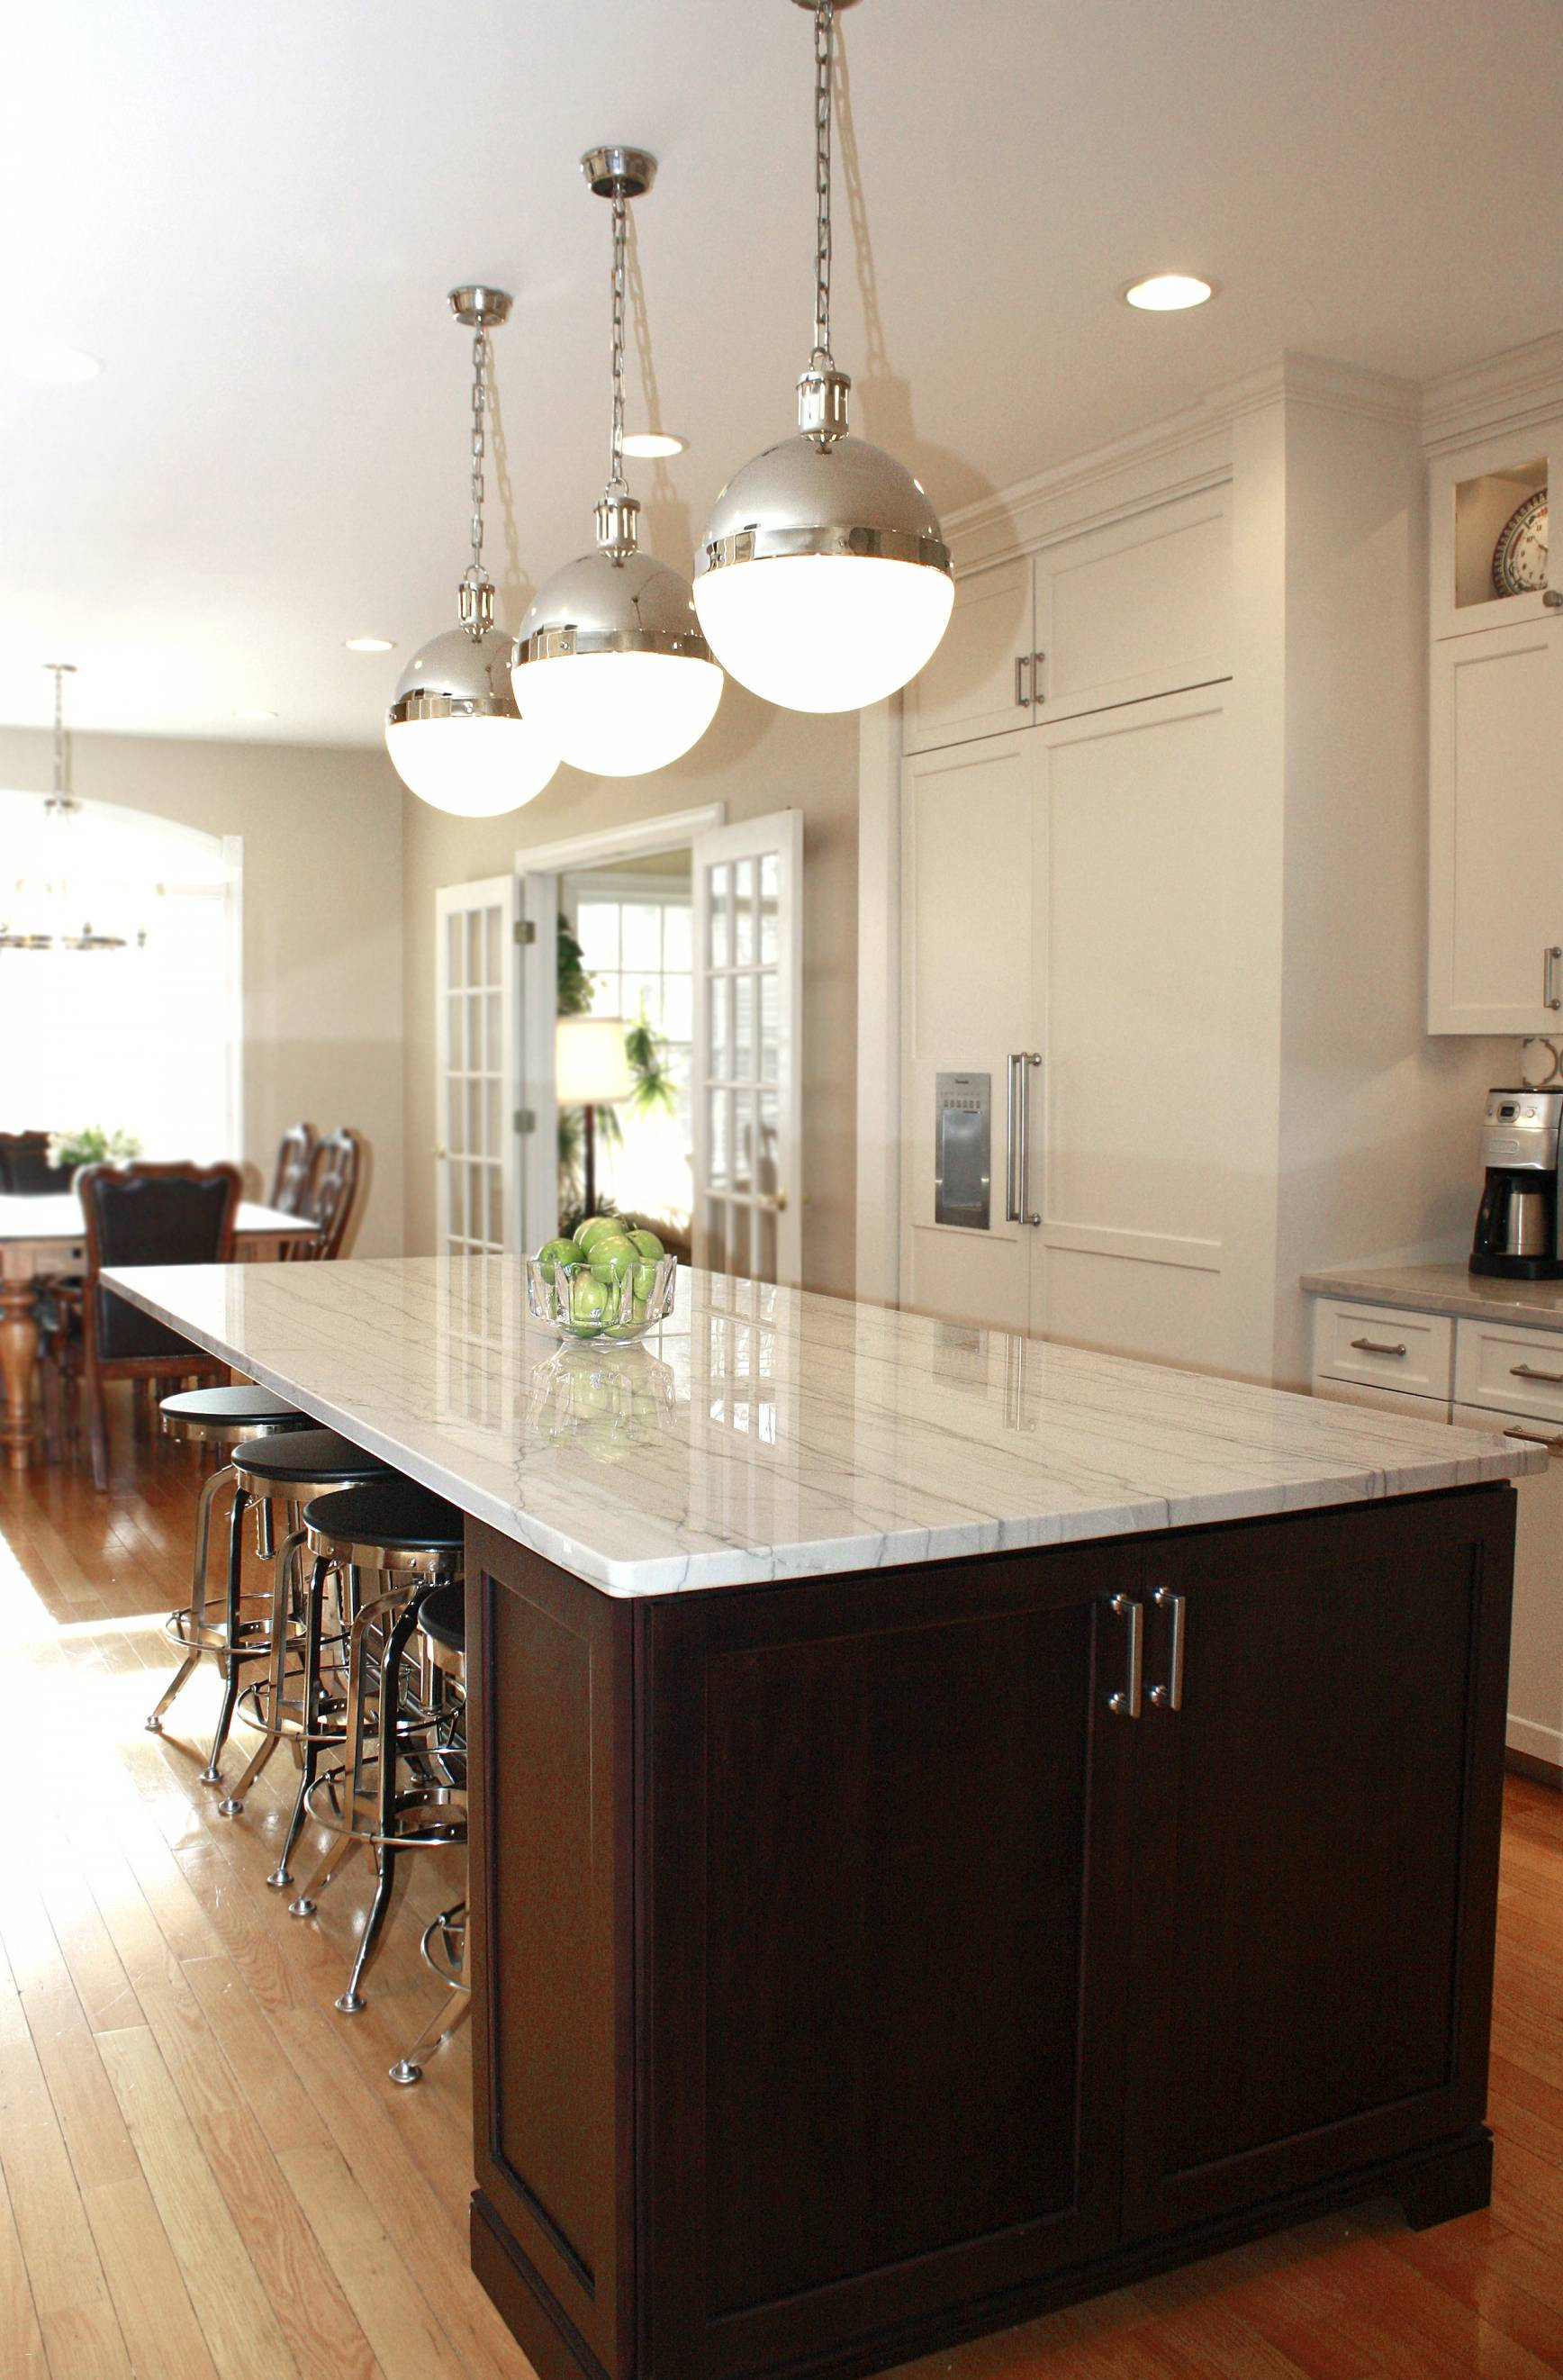 dark hardwood floors with oak cabinets of awesome dark kitchen cabinets oakley site throughout 0d white kitchen cabinets with black countertops new inspirational dark kitchen cabinets with light countertops